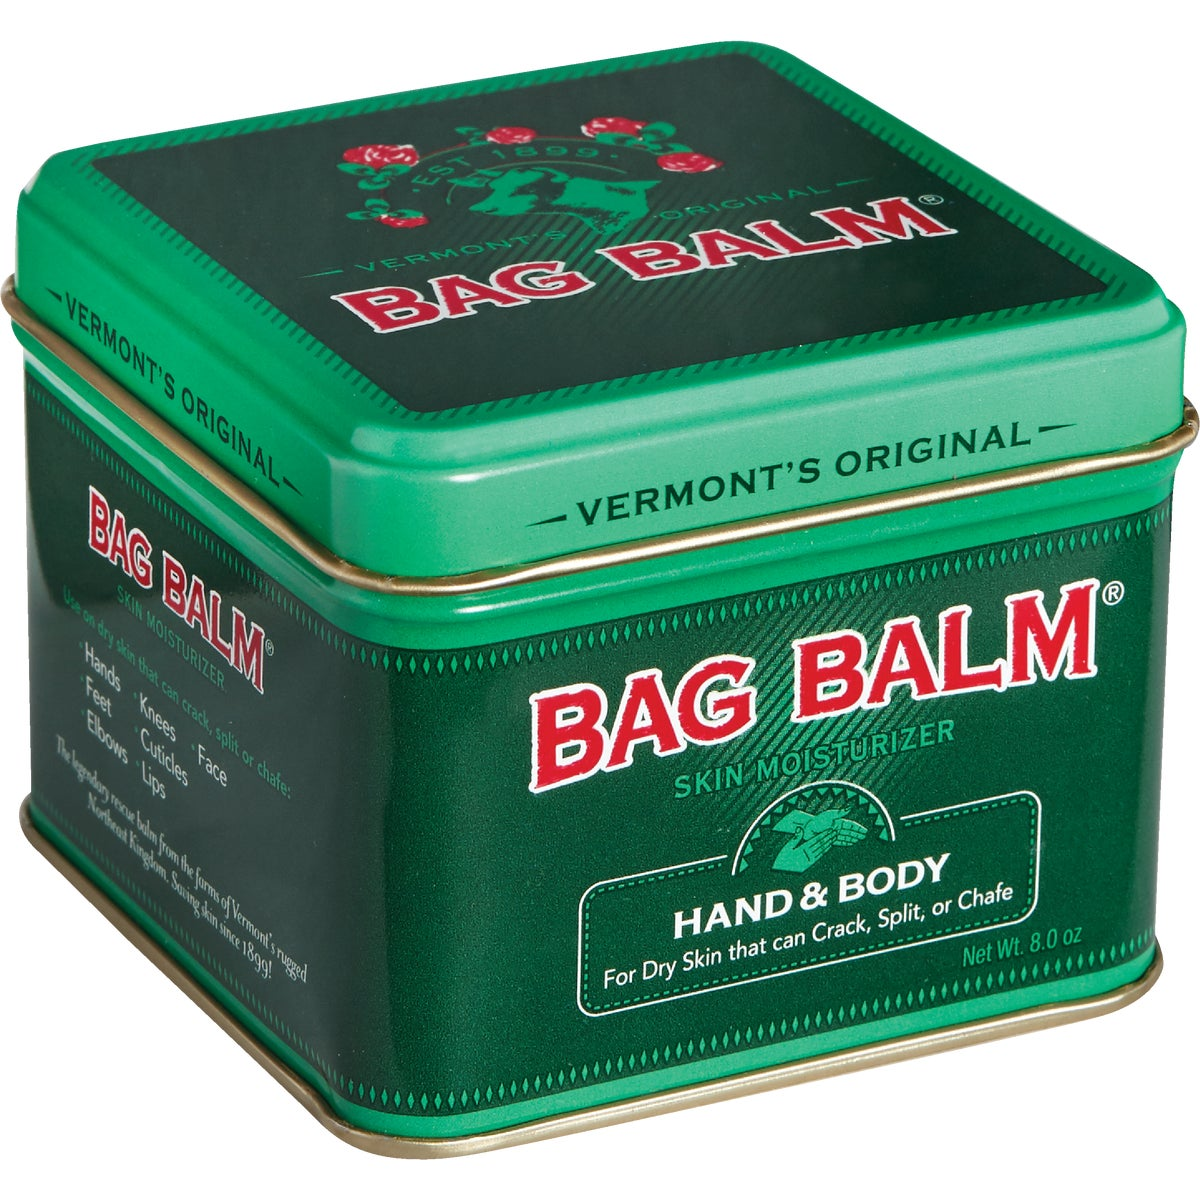 8OZ BAG BALM OINTMENT - BB8 by Dairy Association